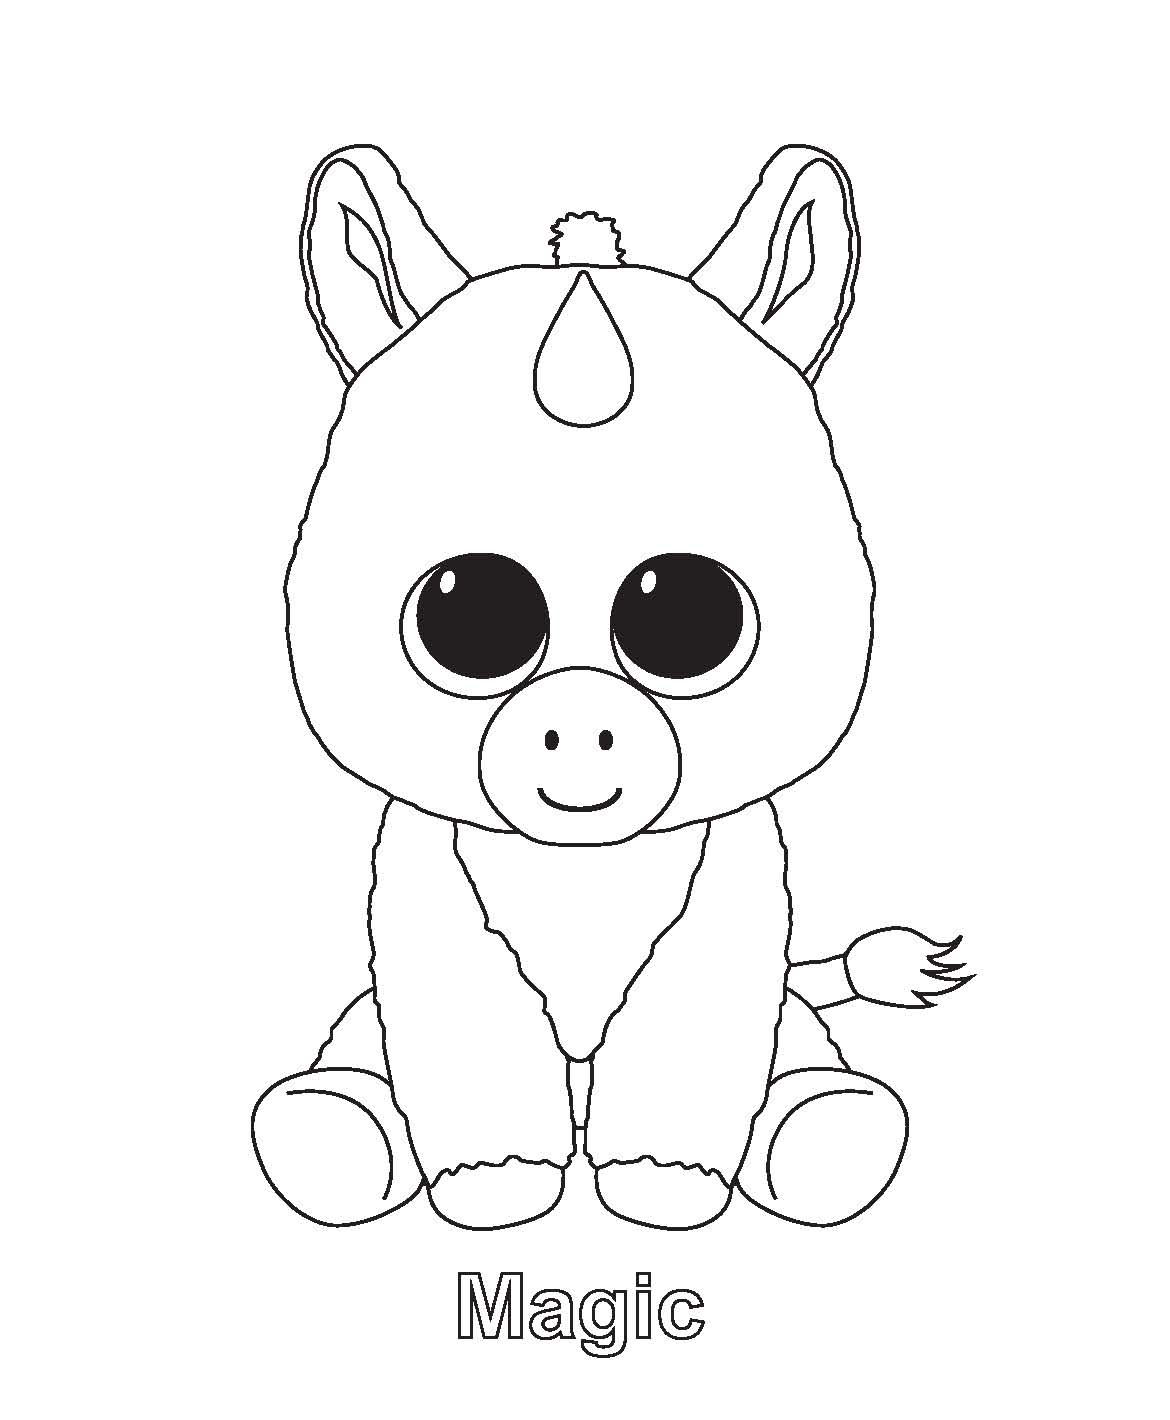 Magic Beanie Boo Coloring Pages